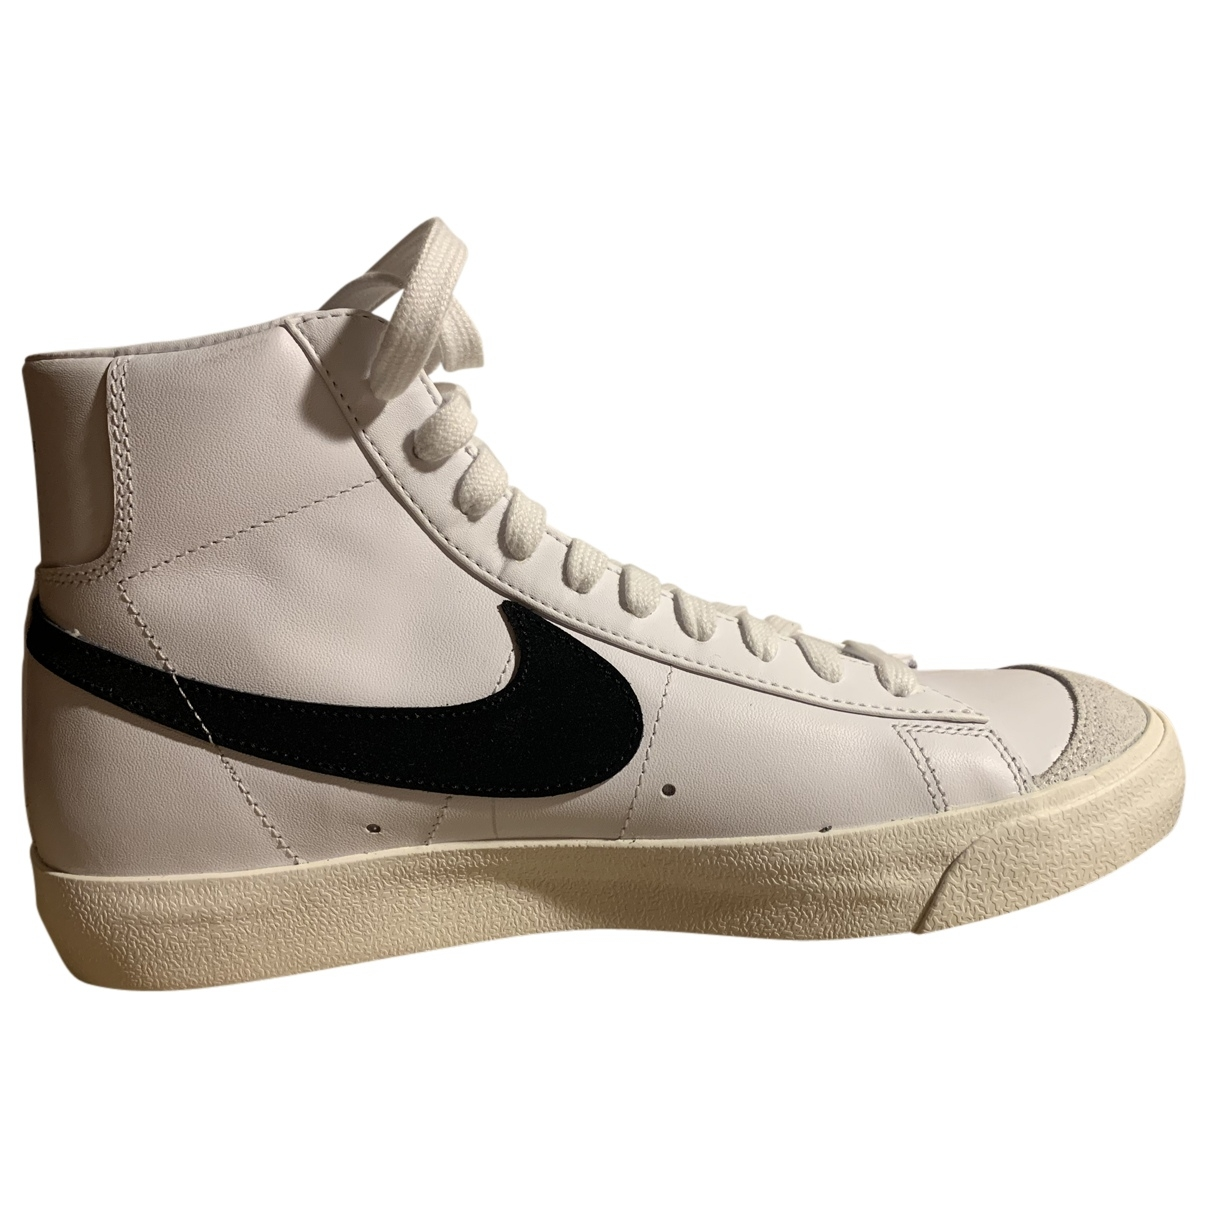 Nike Blazer White Leather Trainers for Women 41 IT